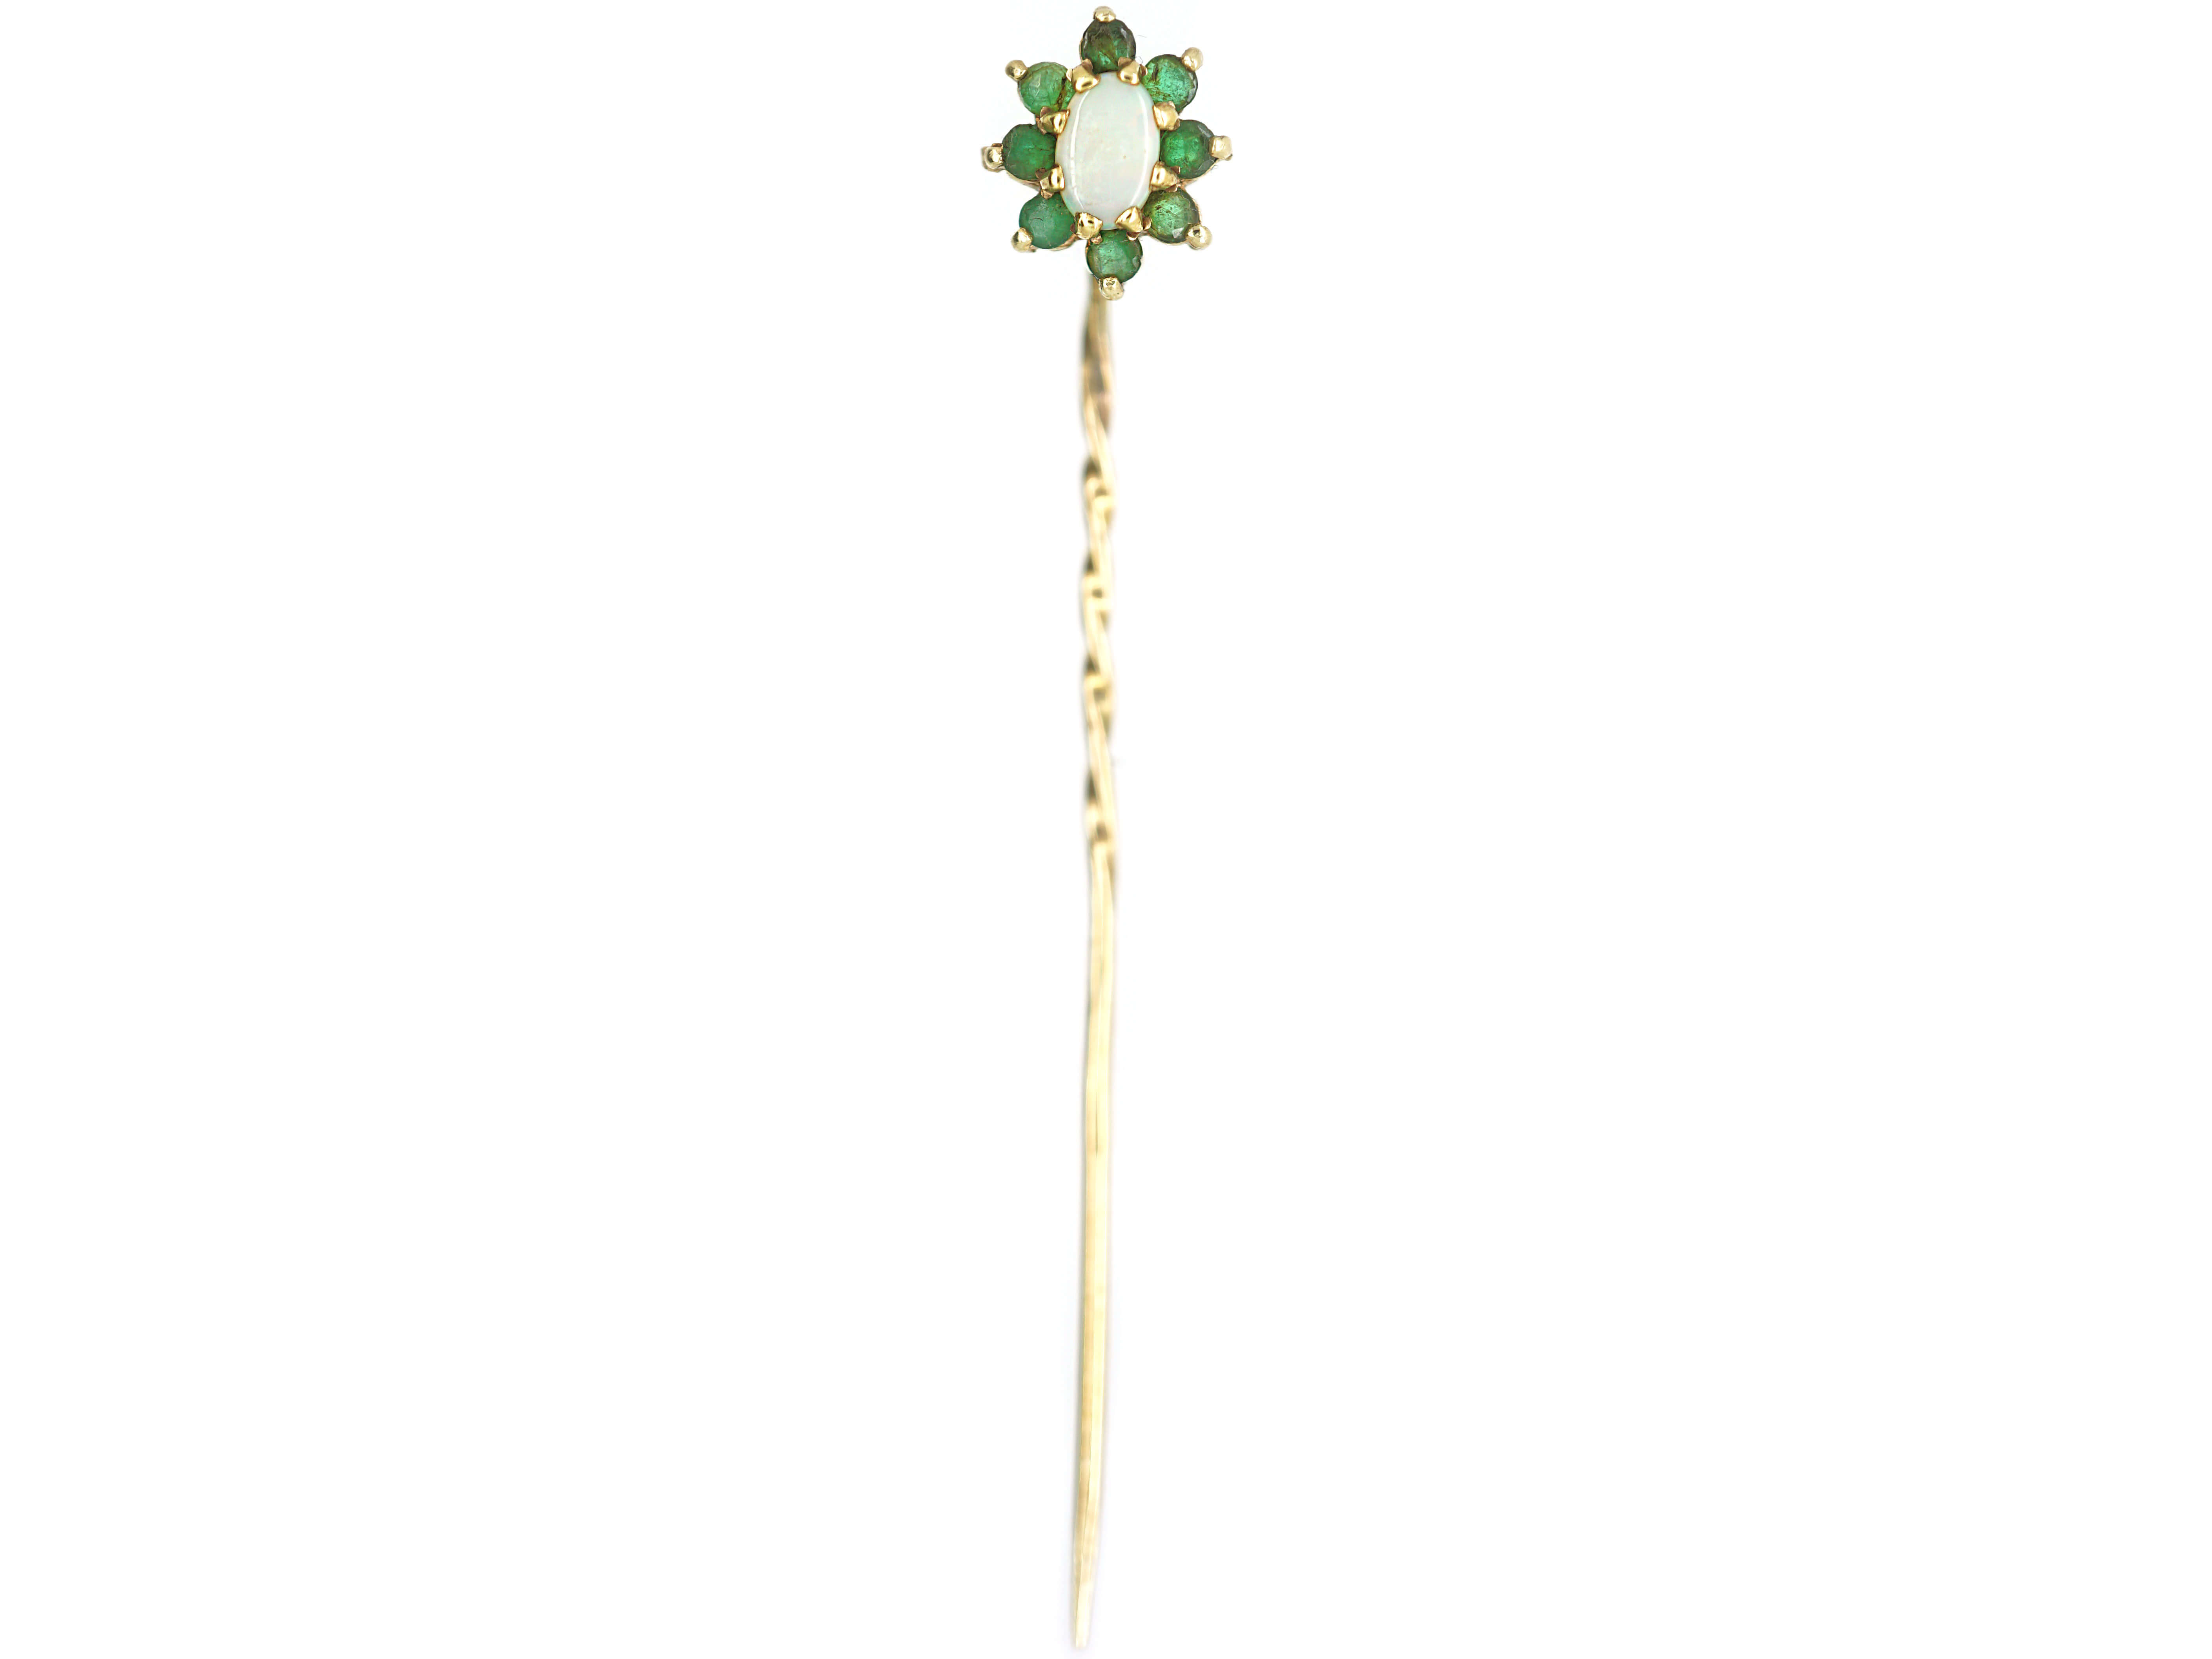 15ct Gold Emerald & Opal Tie Pin